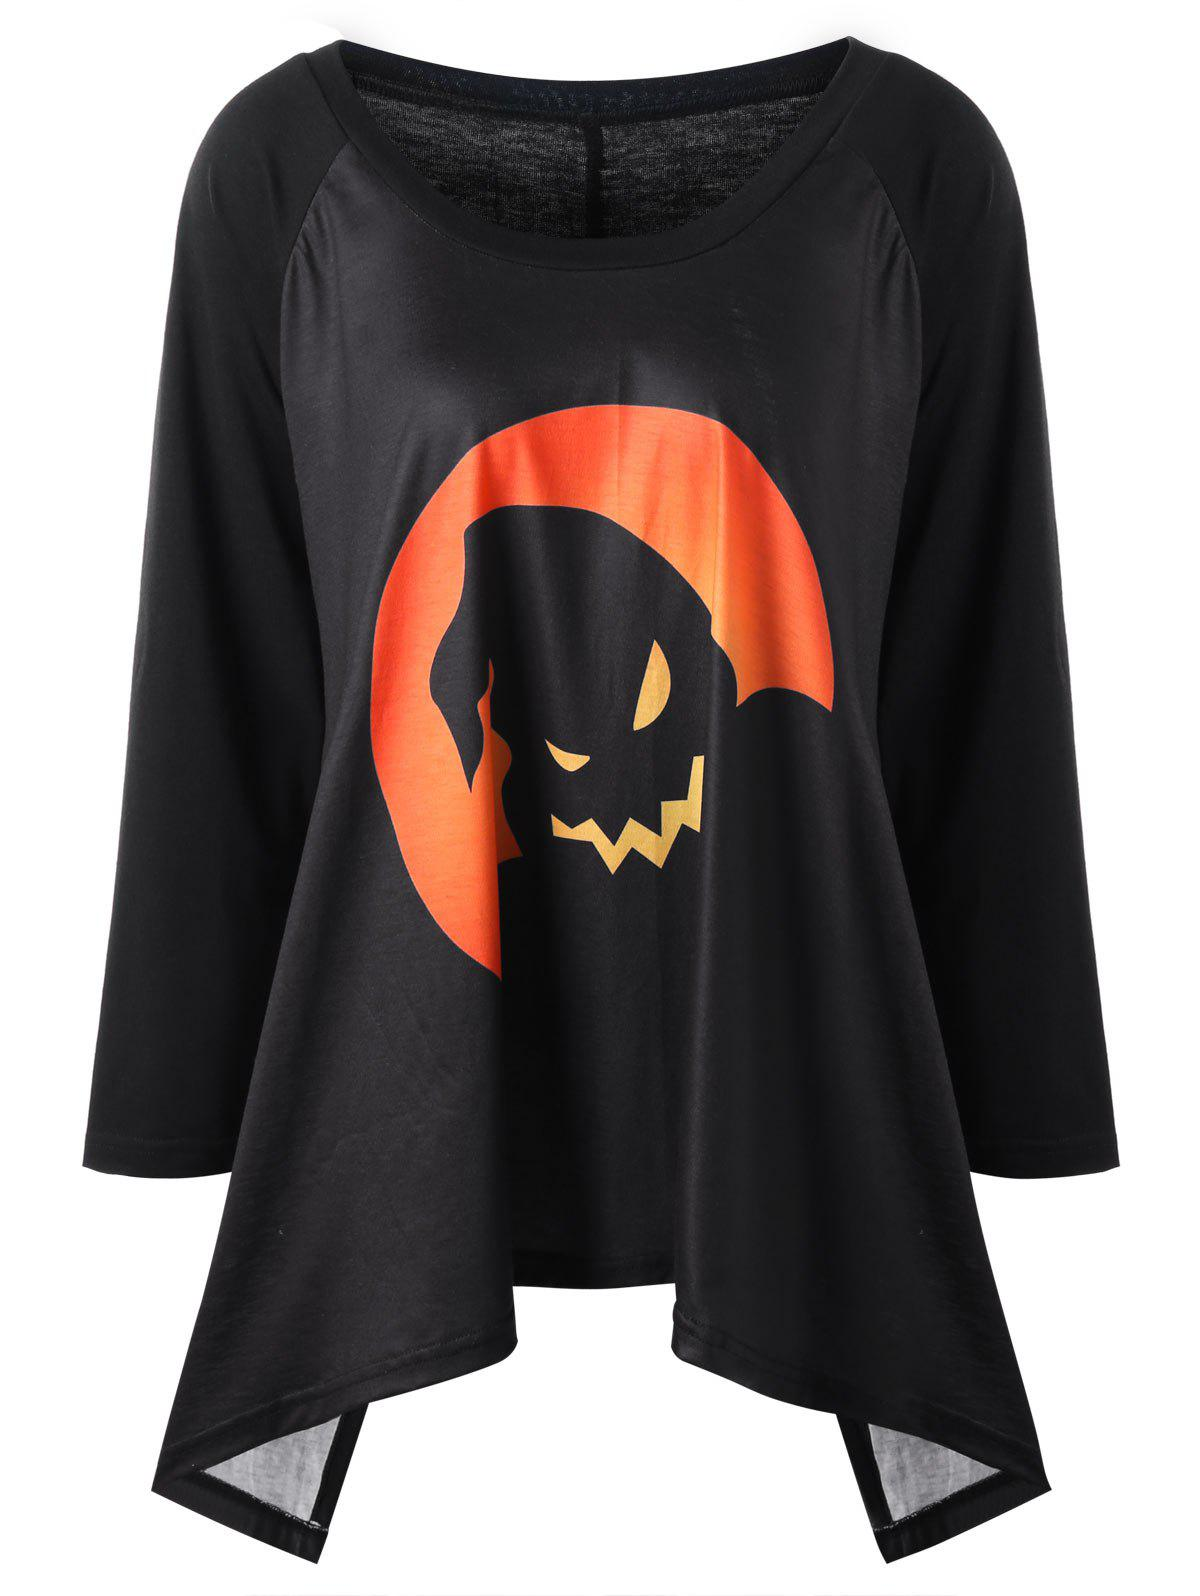 Plus Size Halloween Raglan Sleeve Top - BLACK/ORANGE 5XL